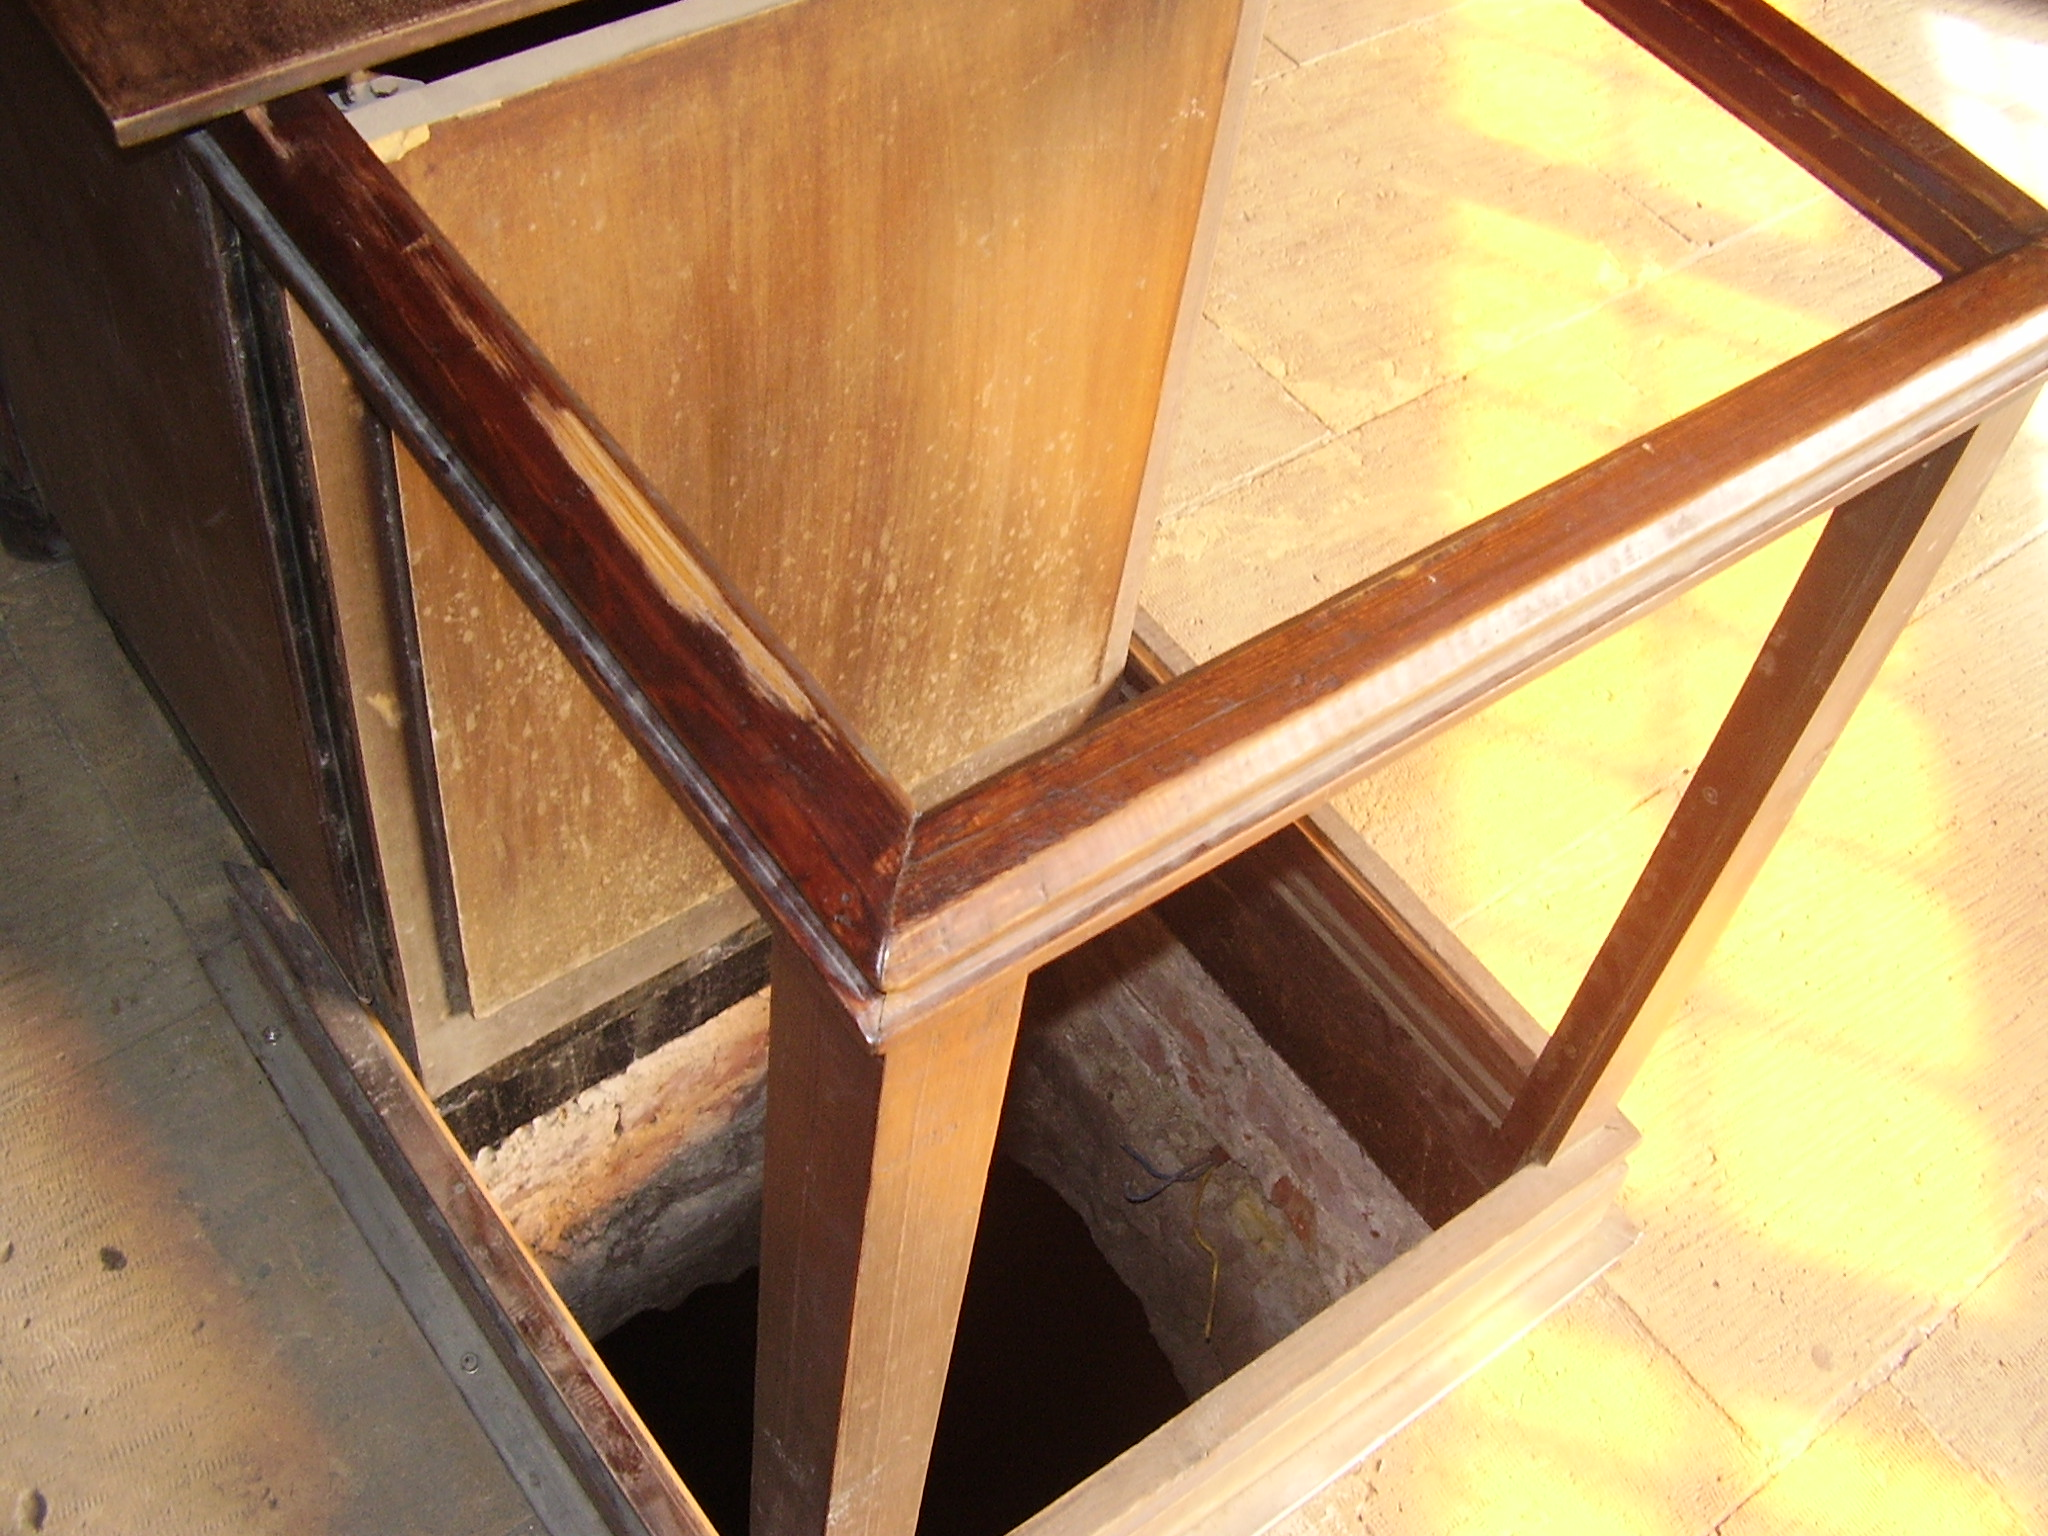 the cistern of the well